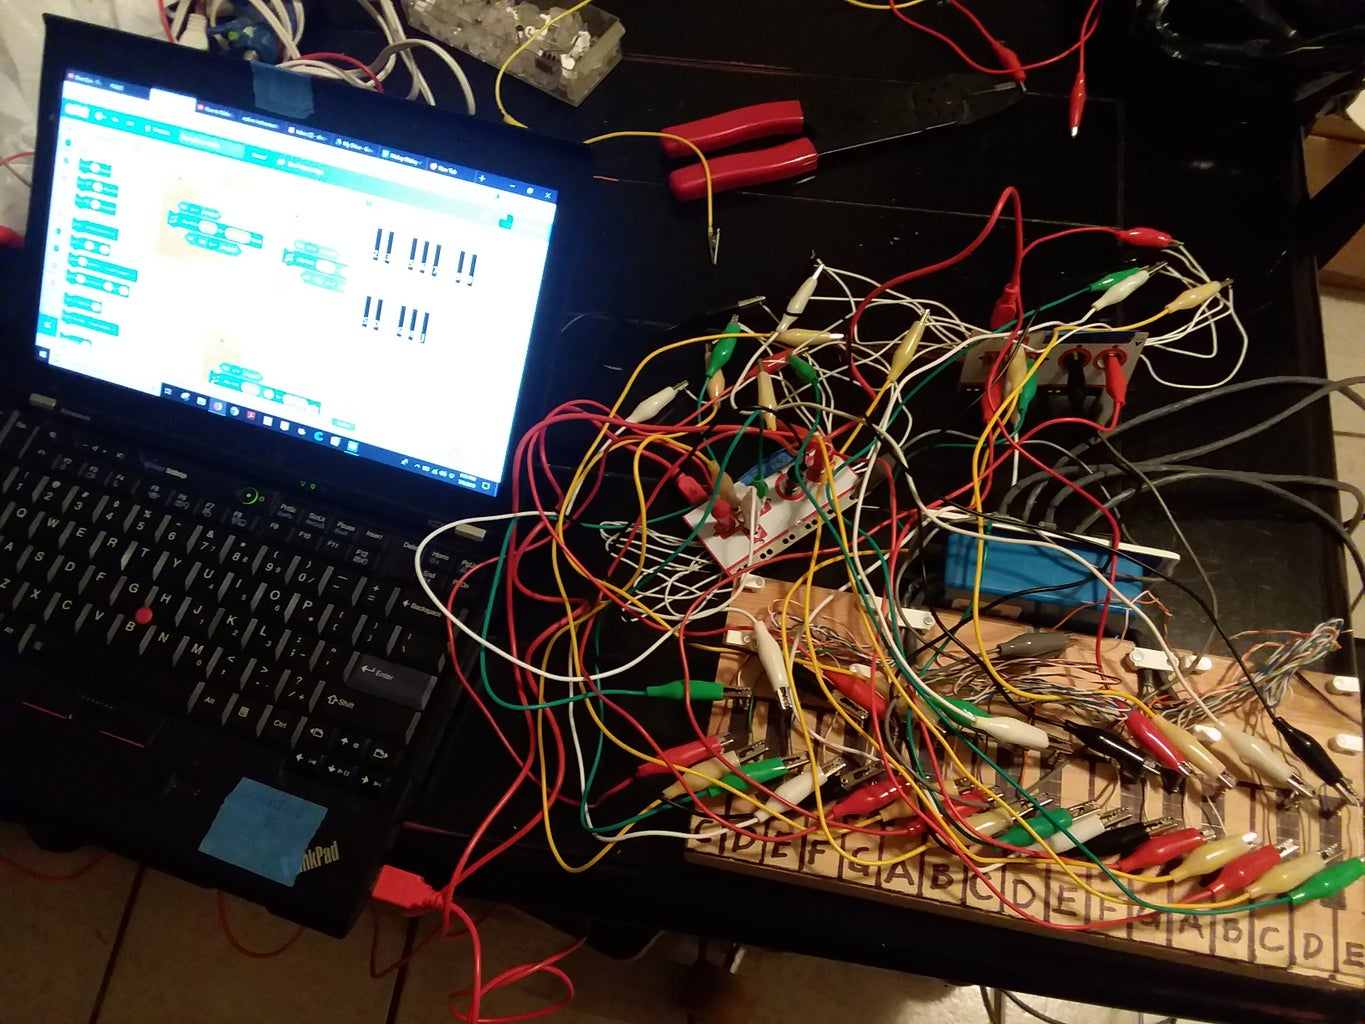 Connecting to the Makey Makeys